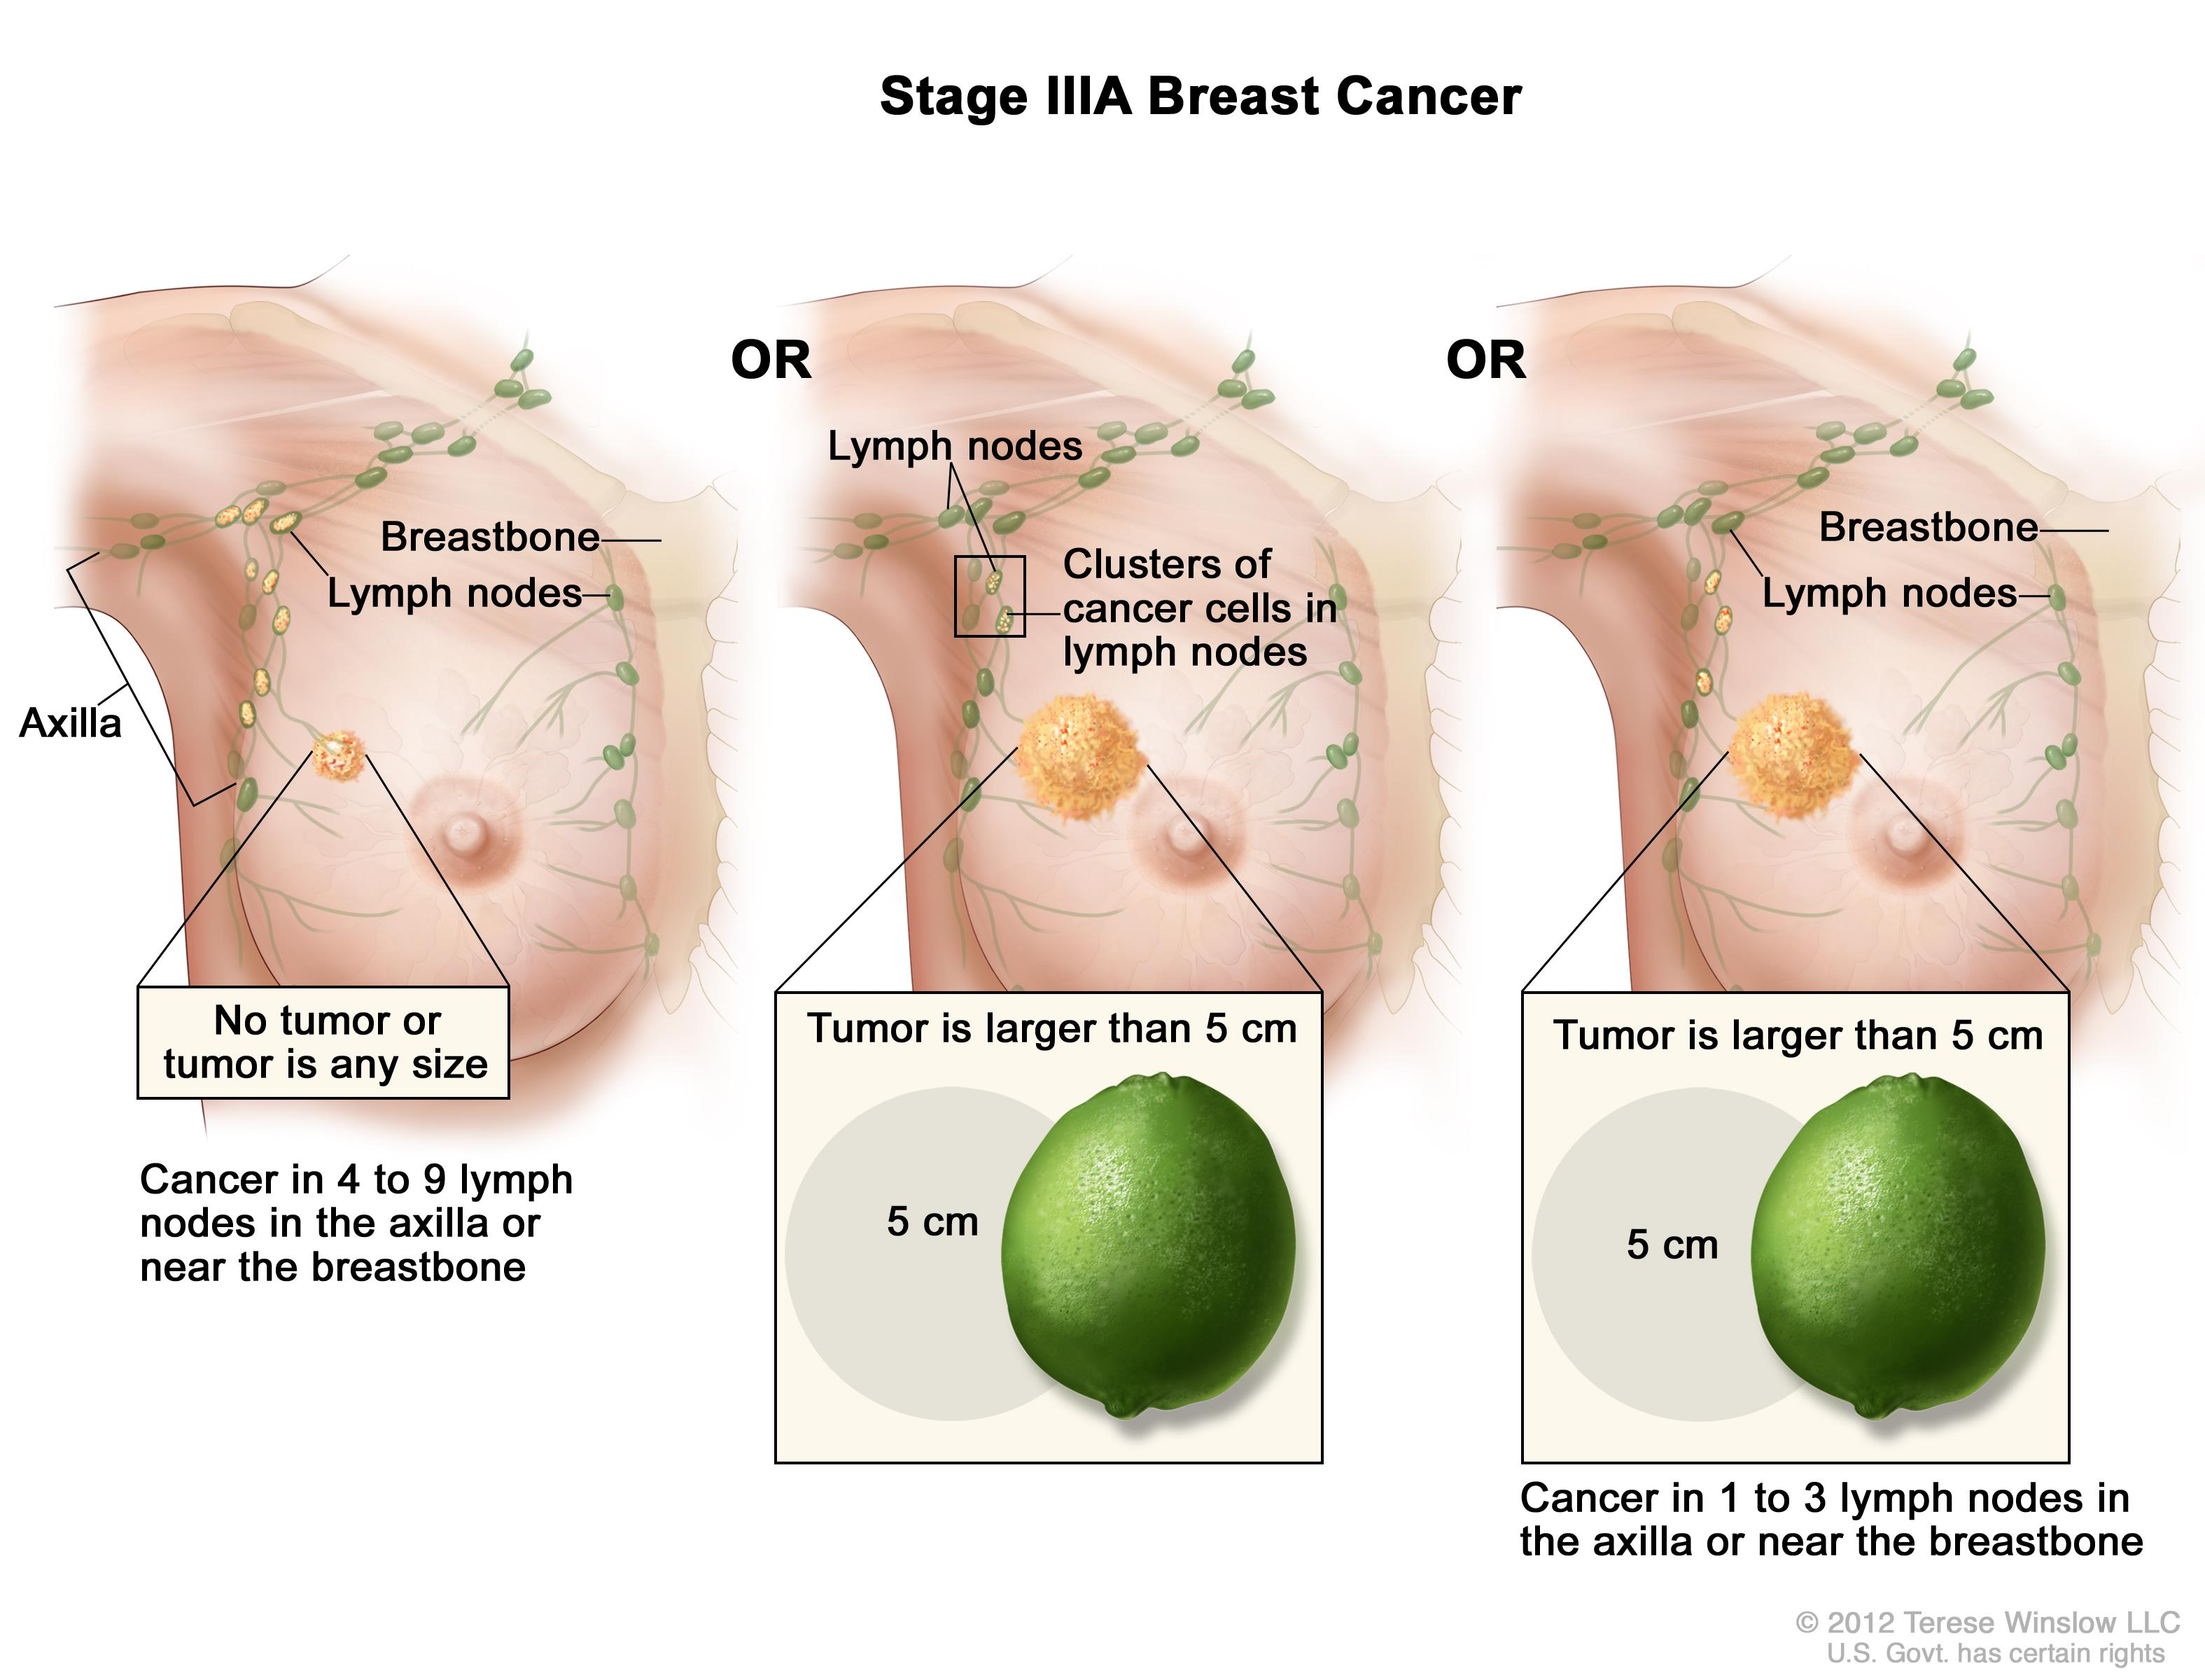 Stage IIIA breast cancer. The drawing on the left shows no tumor in the breast; cancer is found in 8 axillary lymph nodes. The drawing in the middle shows the tumor is larger than 5 cm and small clusters of cancer cells are in the lymph nodes. The drawing on the right shows the tumor is larger than 5 cm and cancer is in 3 axillary lymph nodes.